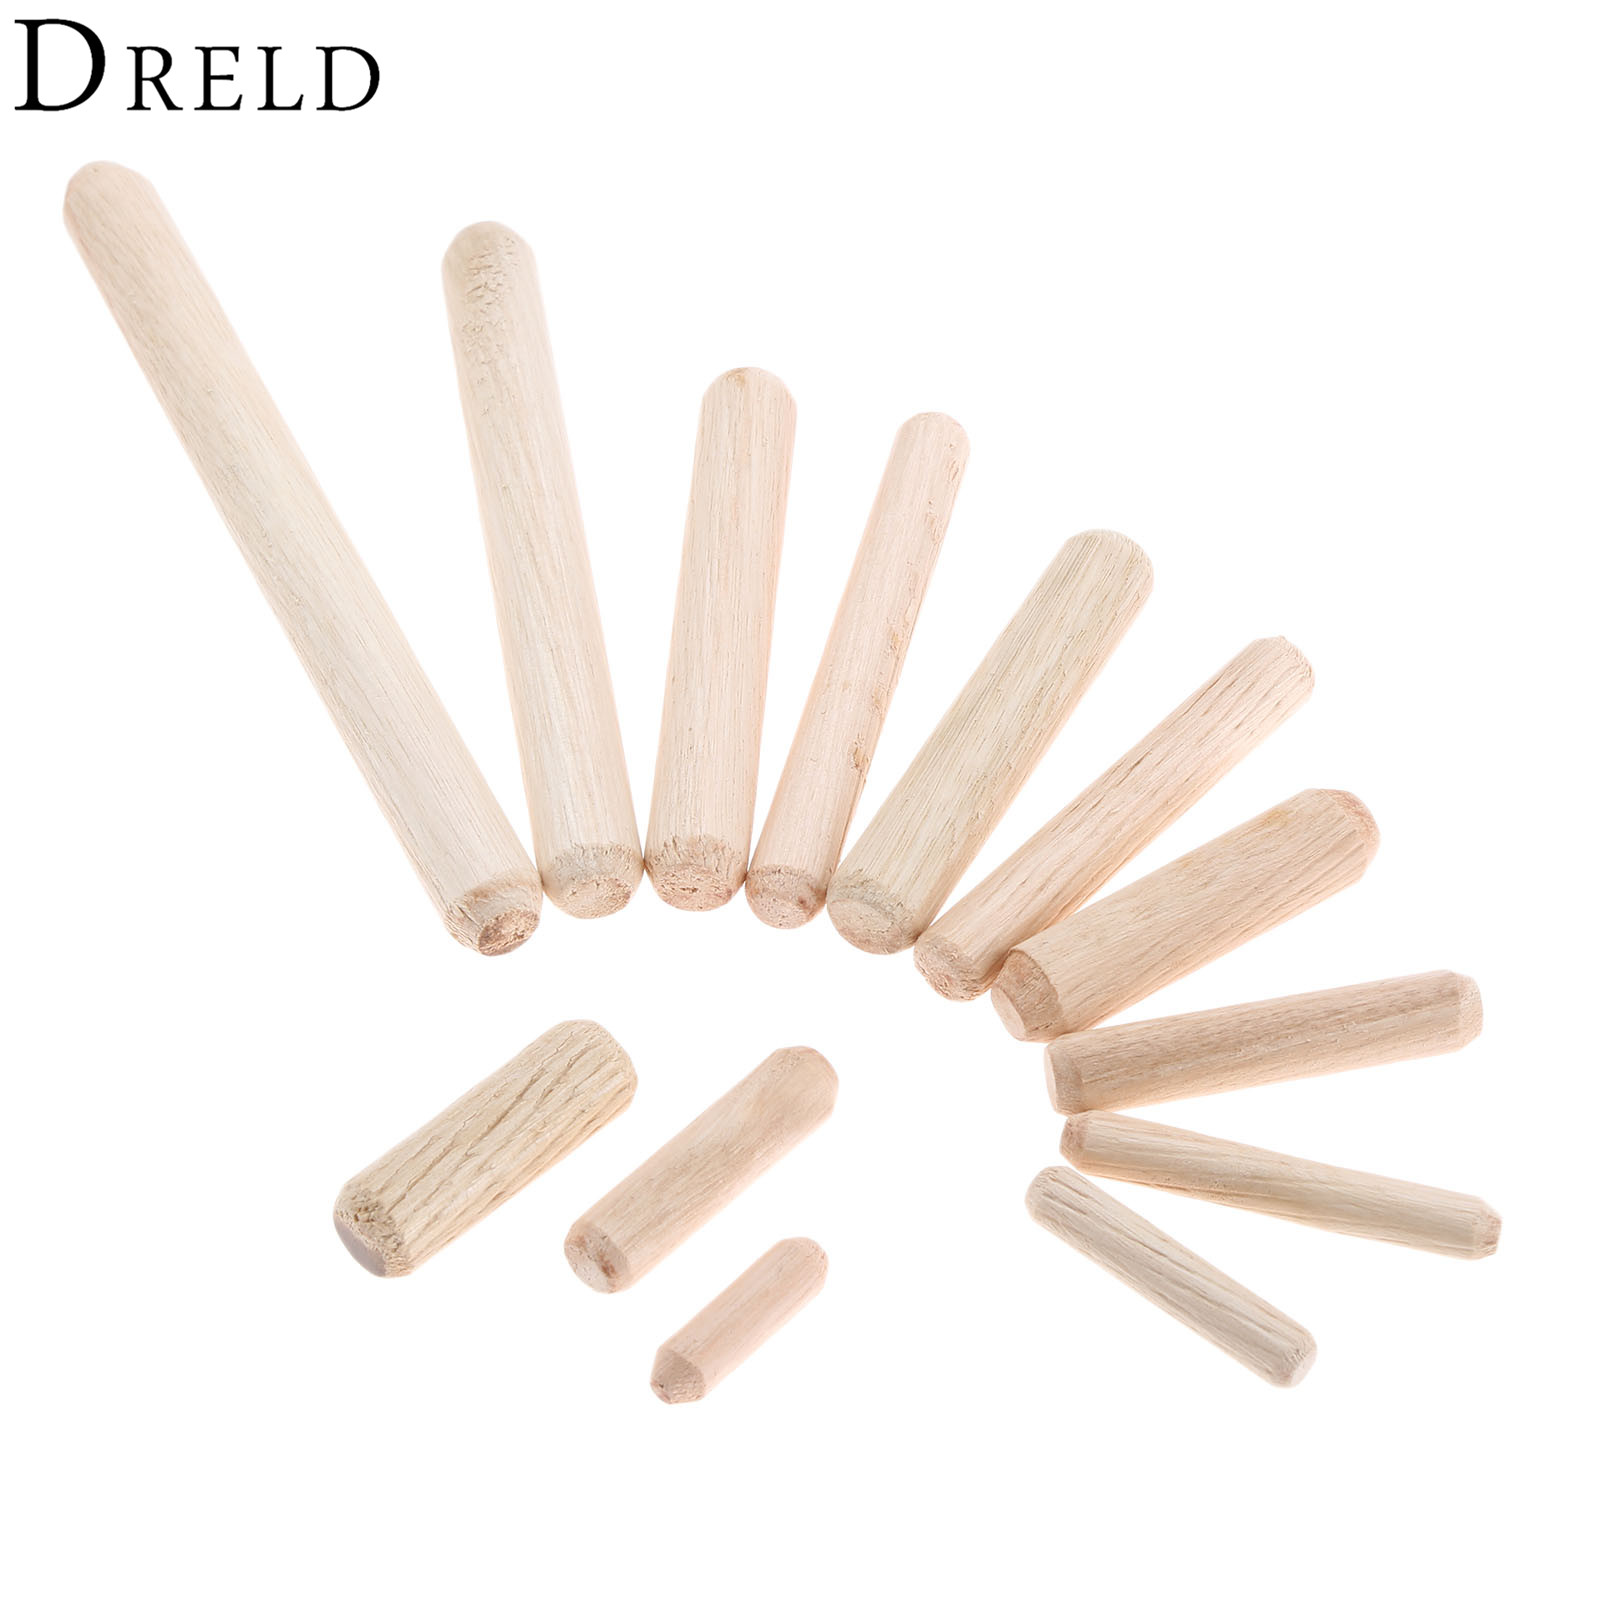 dreld-50-200-pcs-wooden-dowel-cabinet-drawer-round-fluted-wood-craft-dowel-pins-rods-set-furniture-fitting-m6-m8-m10